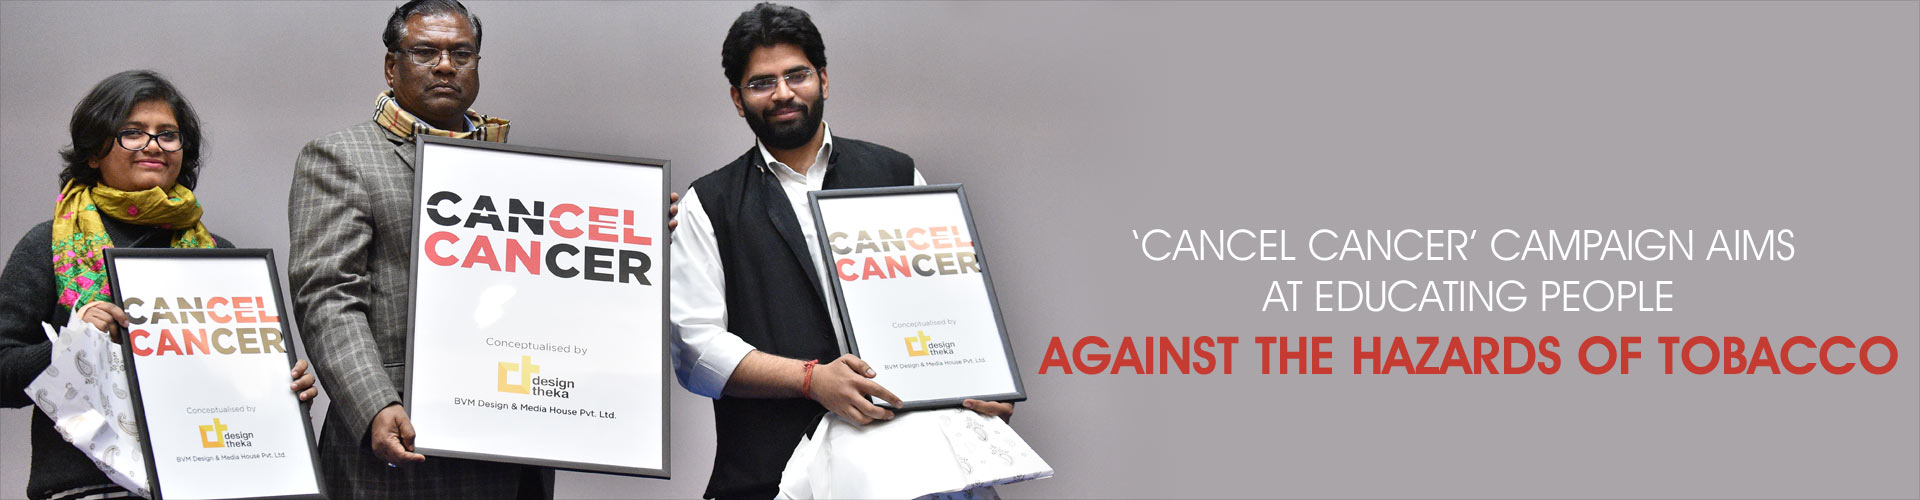 Cancel Cancer - A Campaign Against Tobacco and Cancer in India